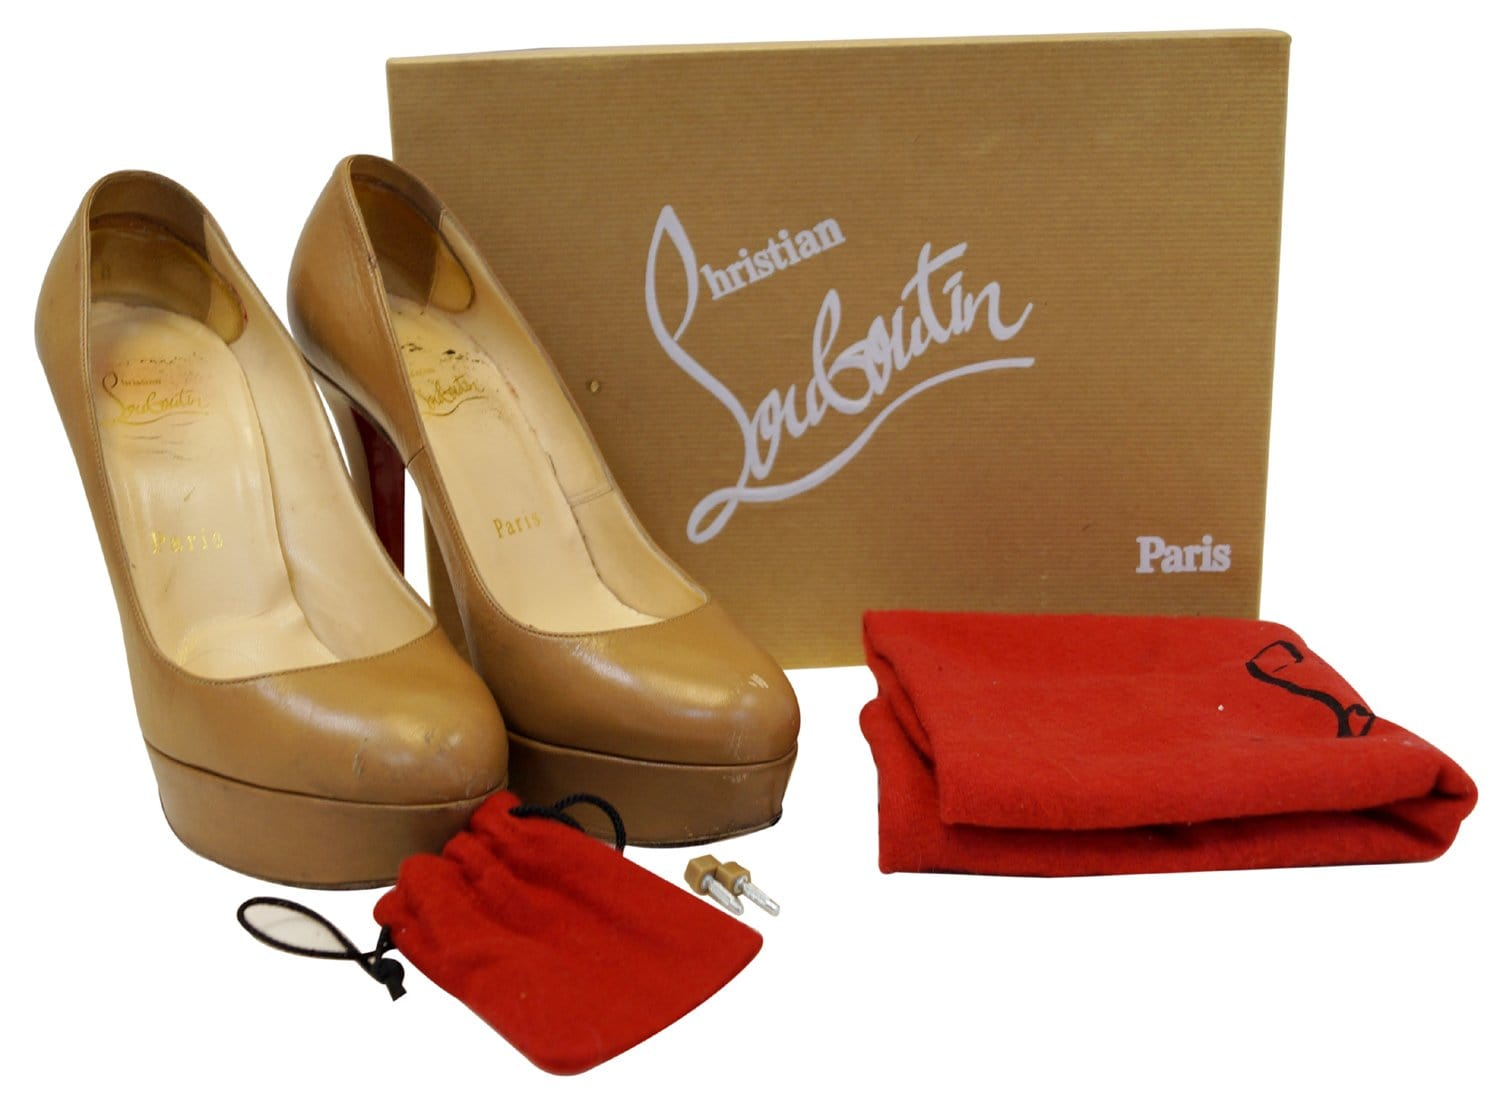 new products df846 2efbb Christian Louboutin Bianca 140 Platform Leather Camel Pumps - Sale